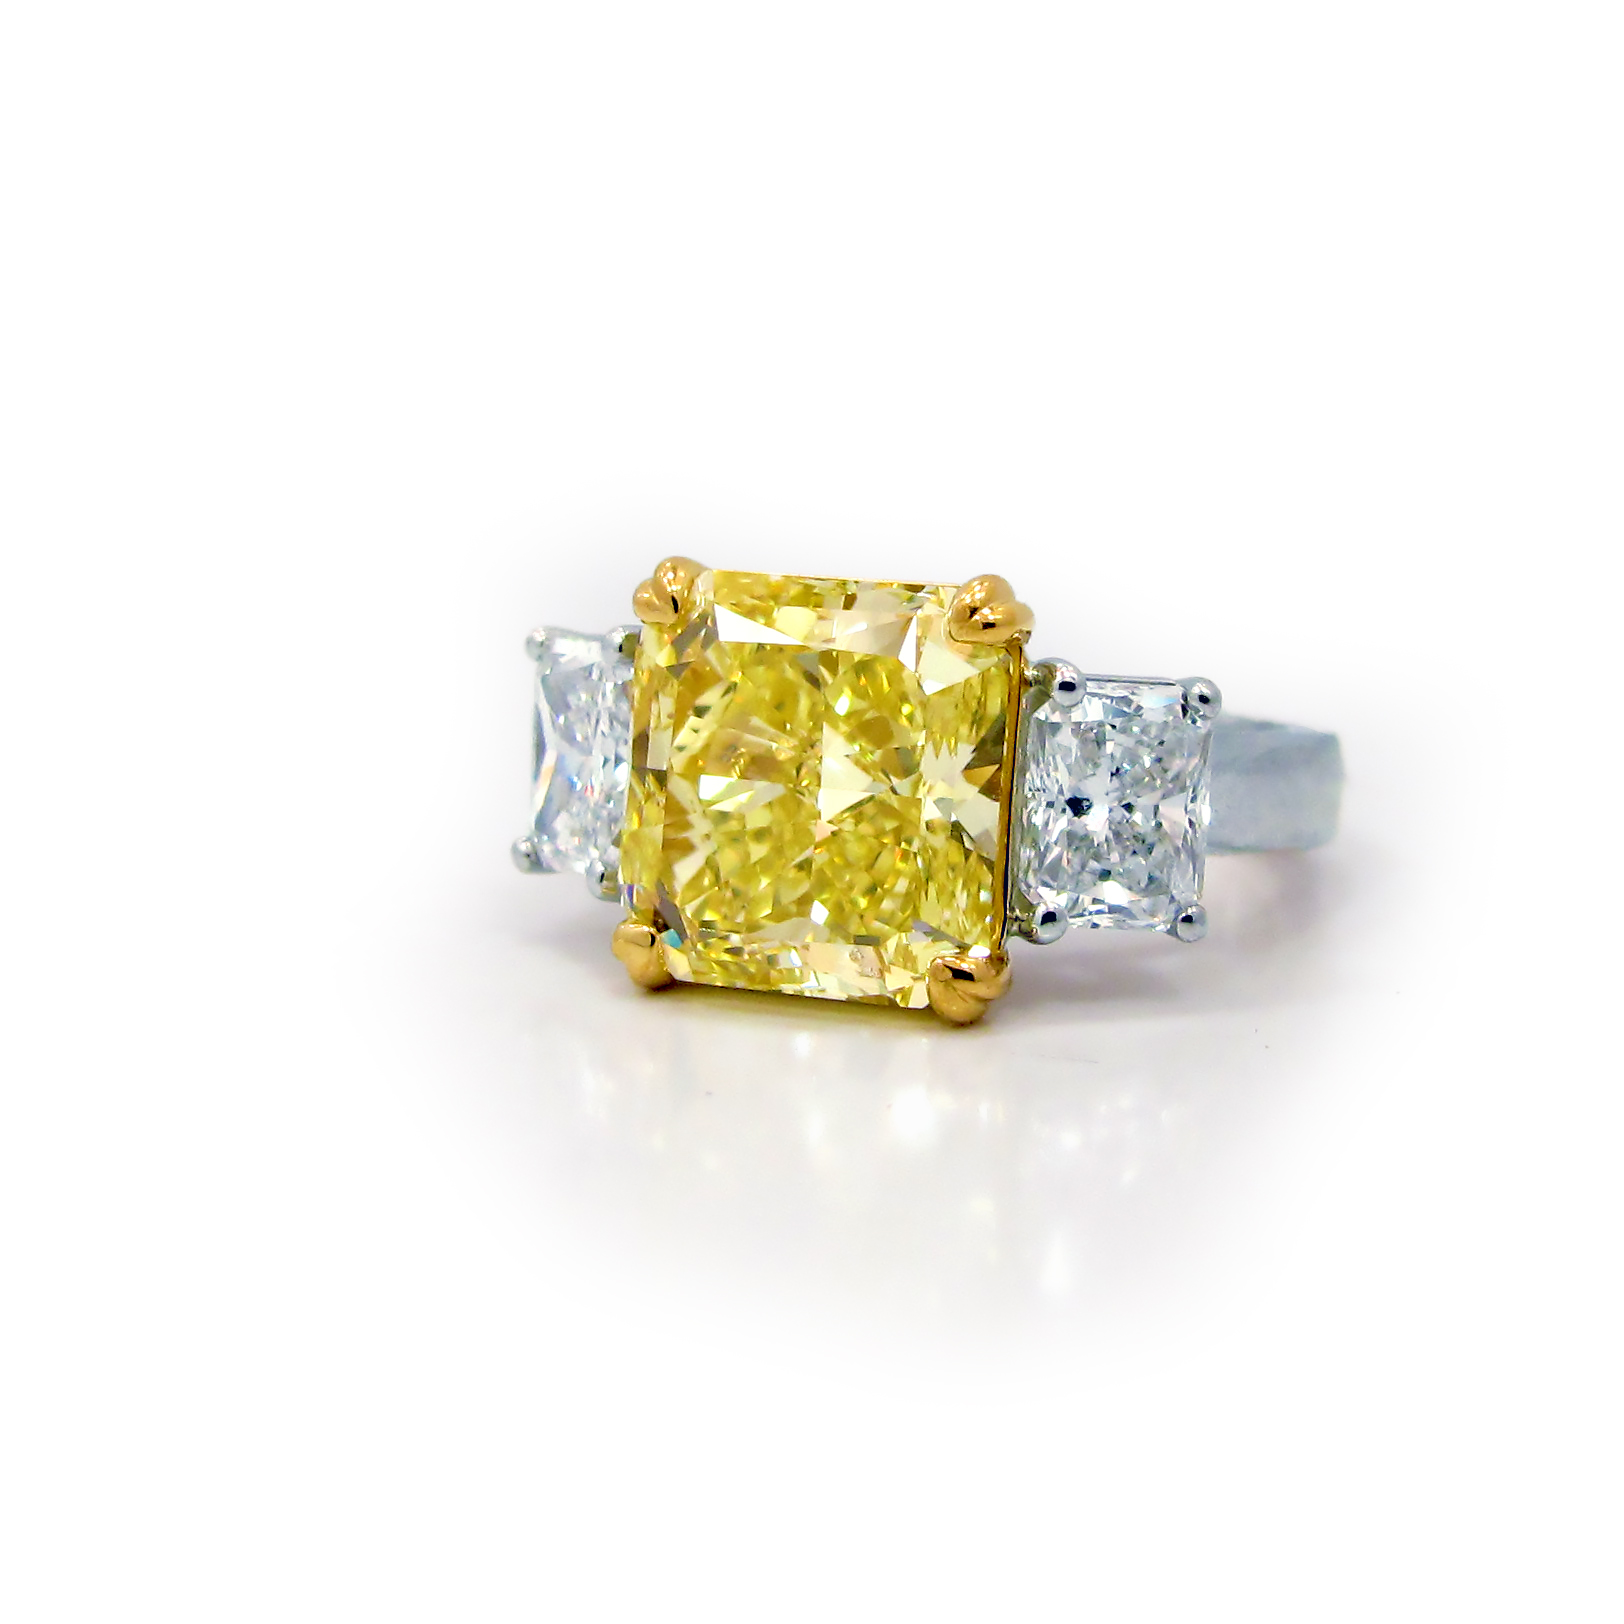 Fancy Intense Yellow Diamond Flawless Radiant, Platinum